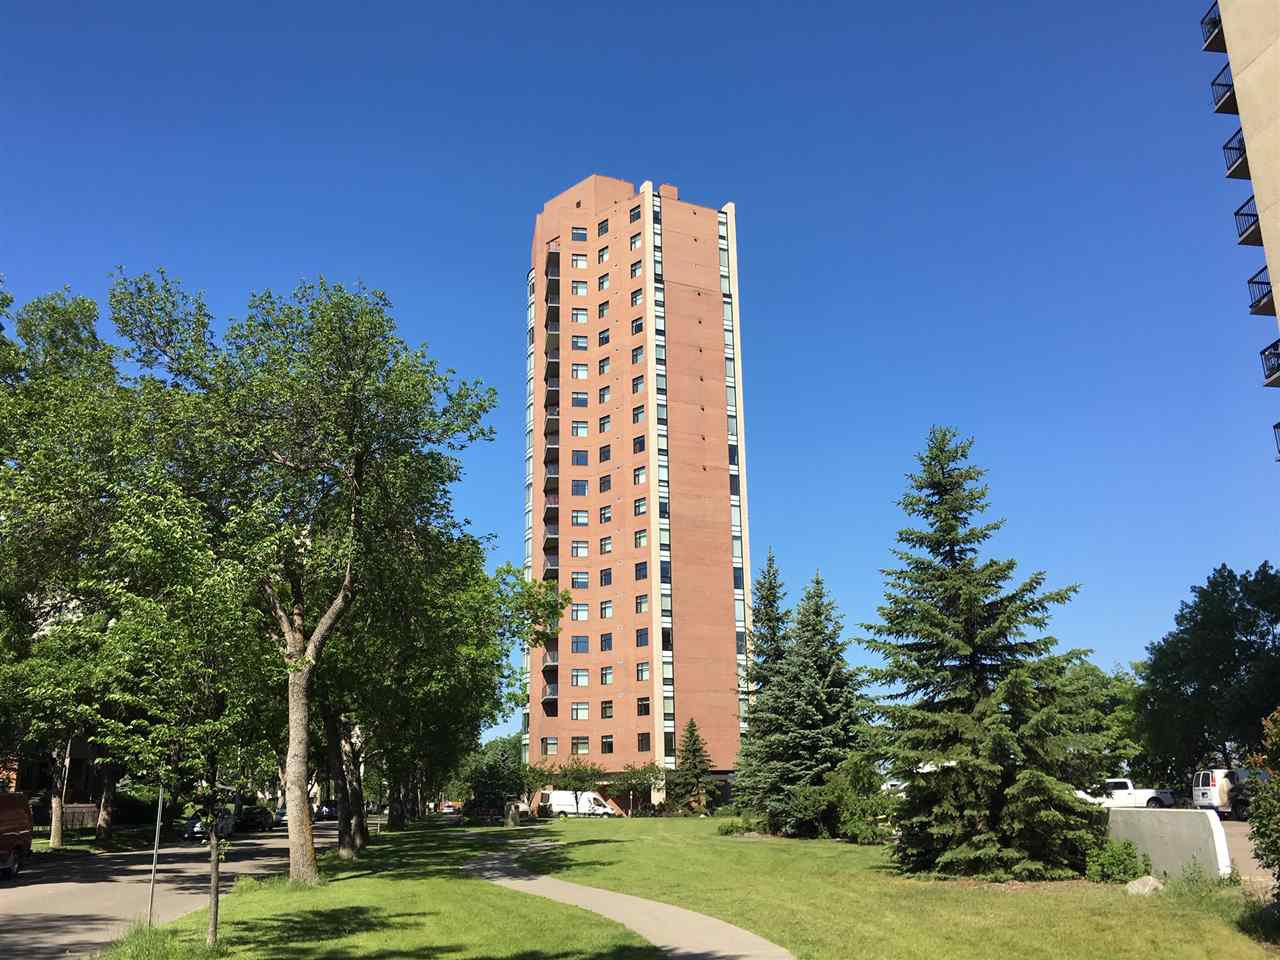 Main Photo: 401 10035 SASKATCHEWAN Drive in Edmonton: Zone 15 Condo for sale : MLS®# E4169099